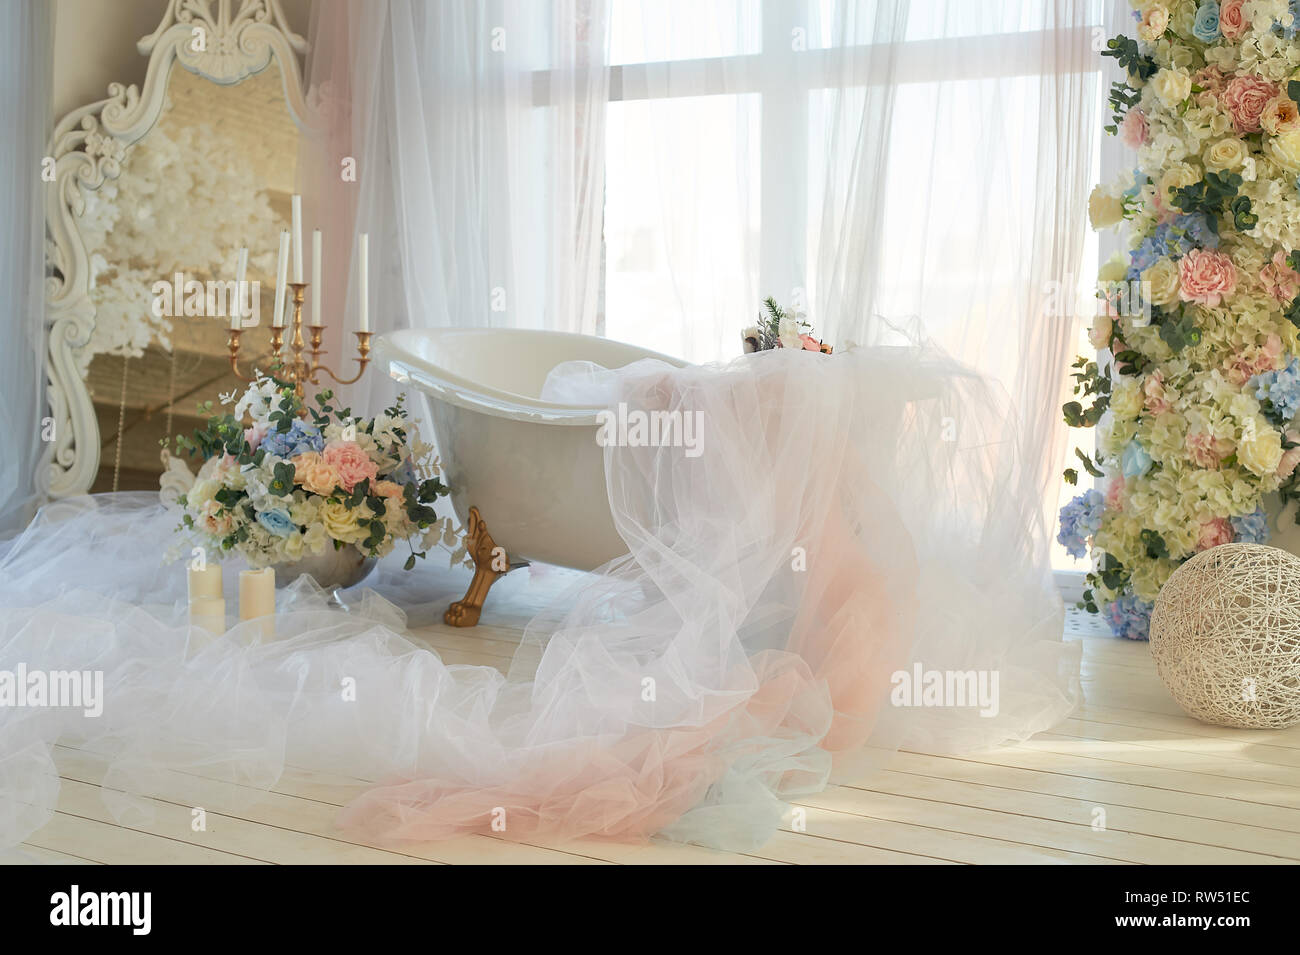 Bath on lion's Golden paws.The atmosphere of romance and love. Light interior, chiffon, flowers. - Stock Image